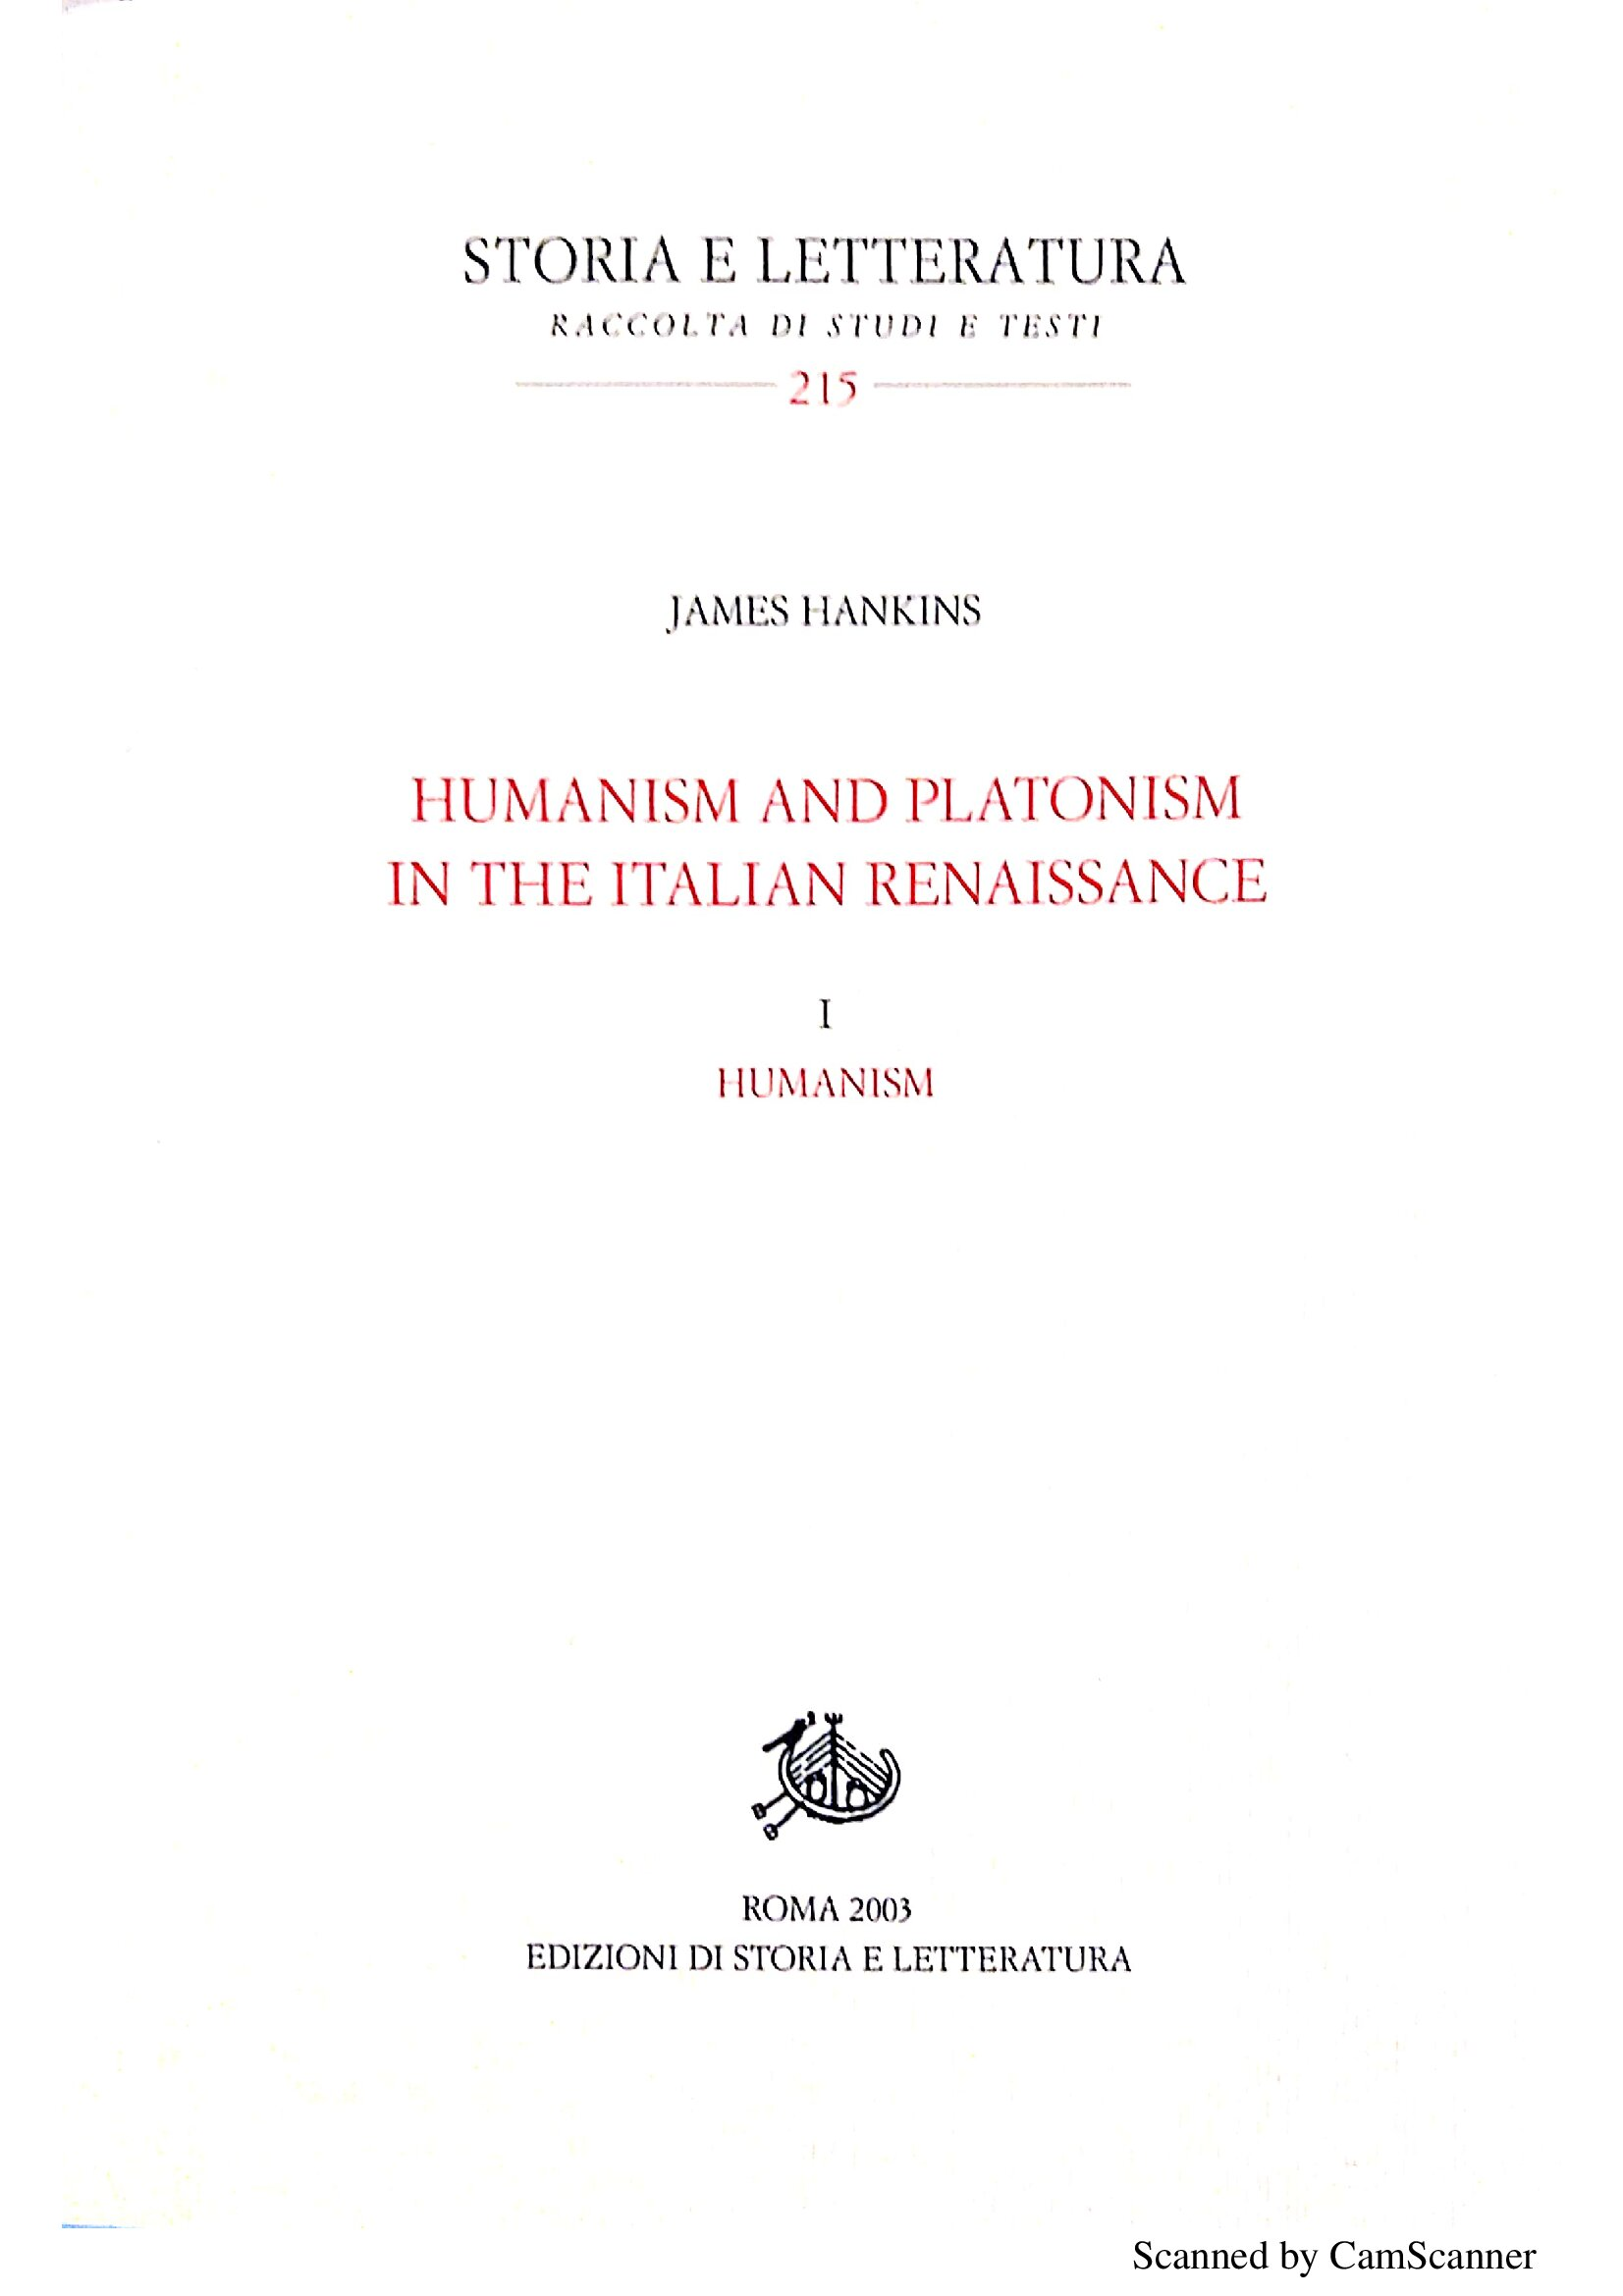 Humanism and Platonism in the Italian Renaissance / Humanism